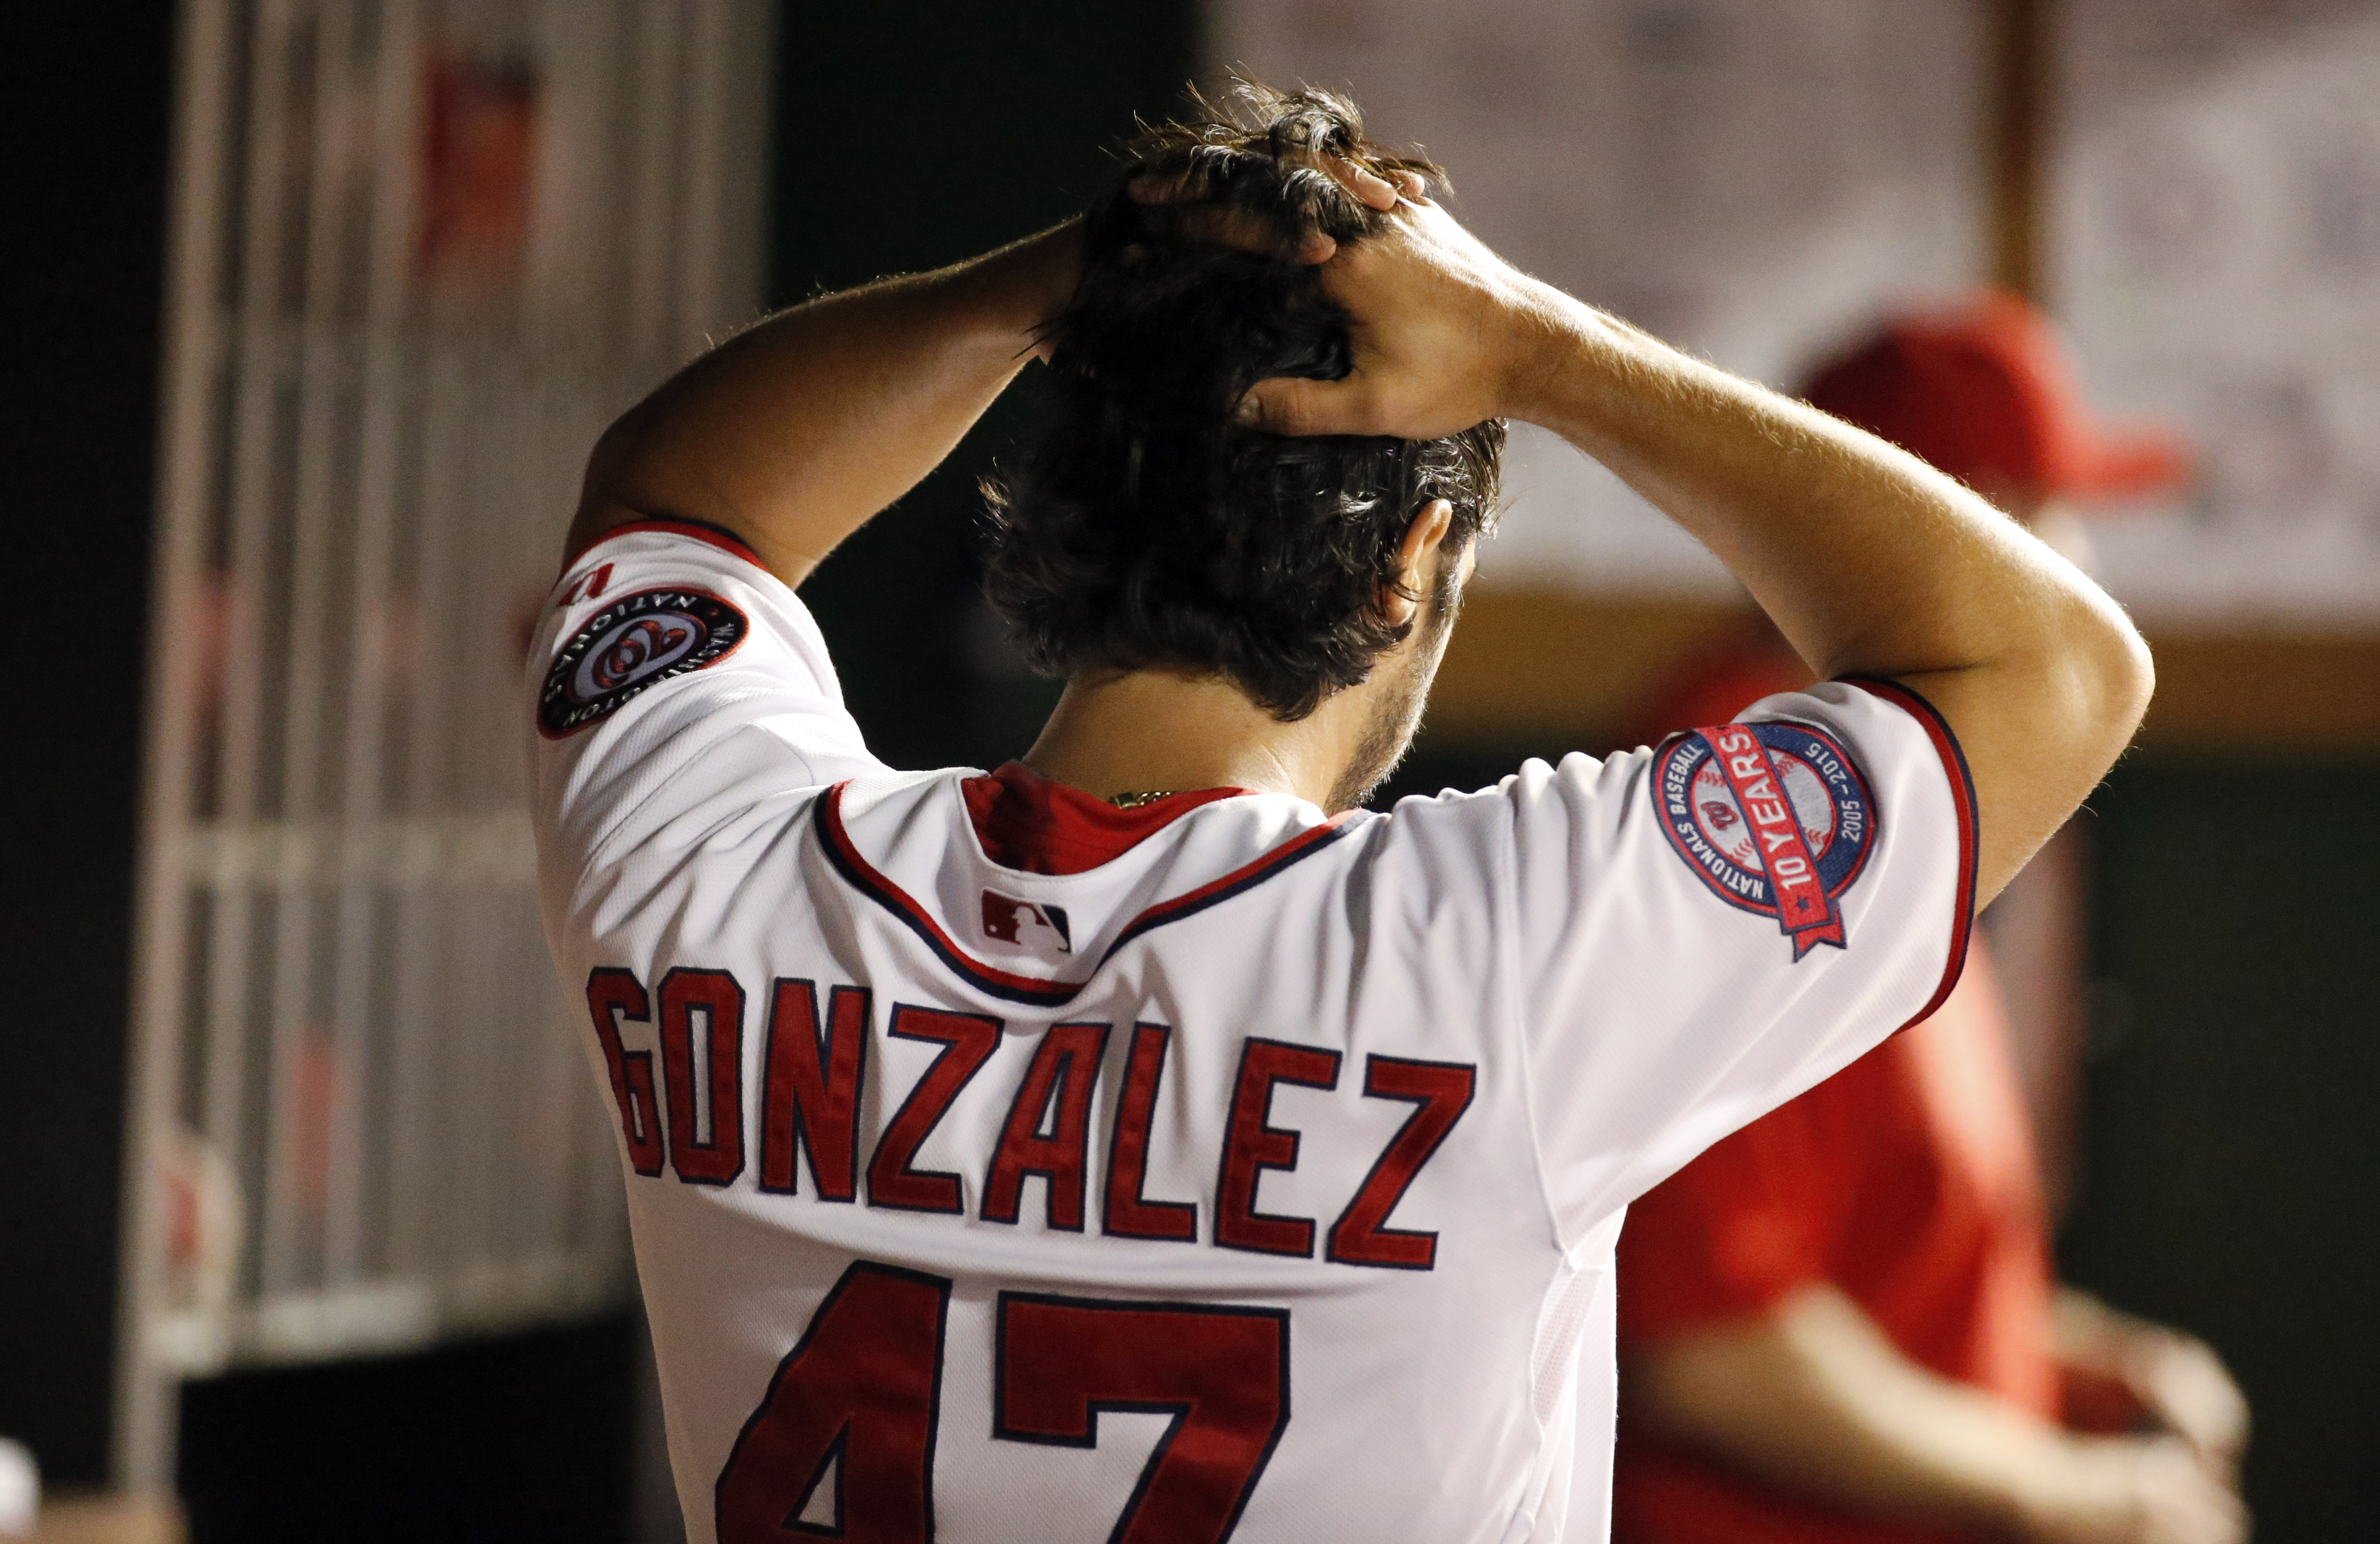 Washington Nationals starting pitcher Gio Gonzalez reacts in the dugout after he was removed during the fifth inning of a baseball game against the San Diego Padres at Nationals Park, Wednesday, Aug. 26, 2015, in Washington. (AP Photo/Alex Brandon)